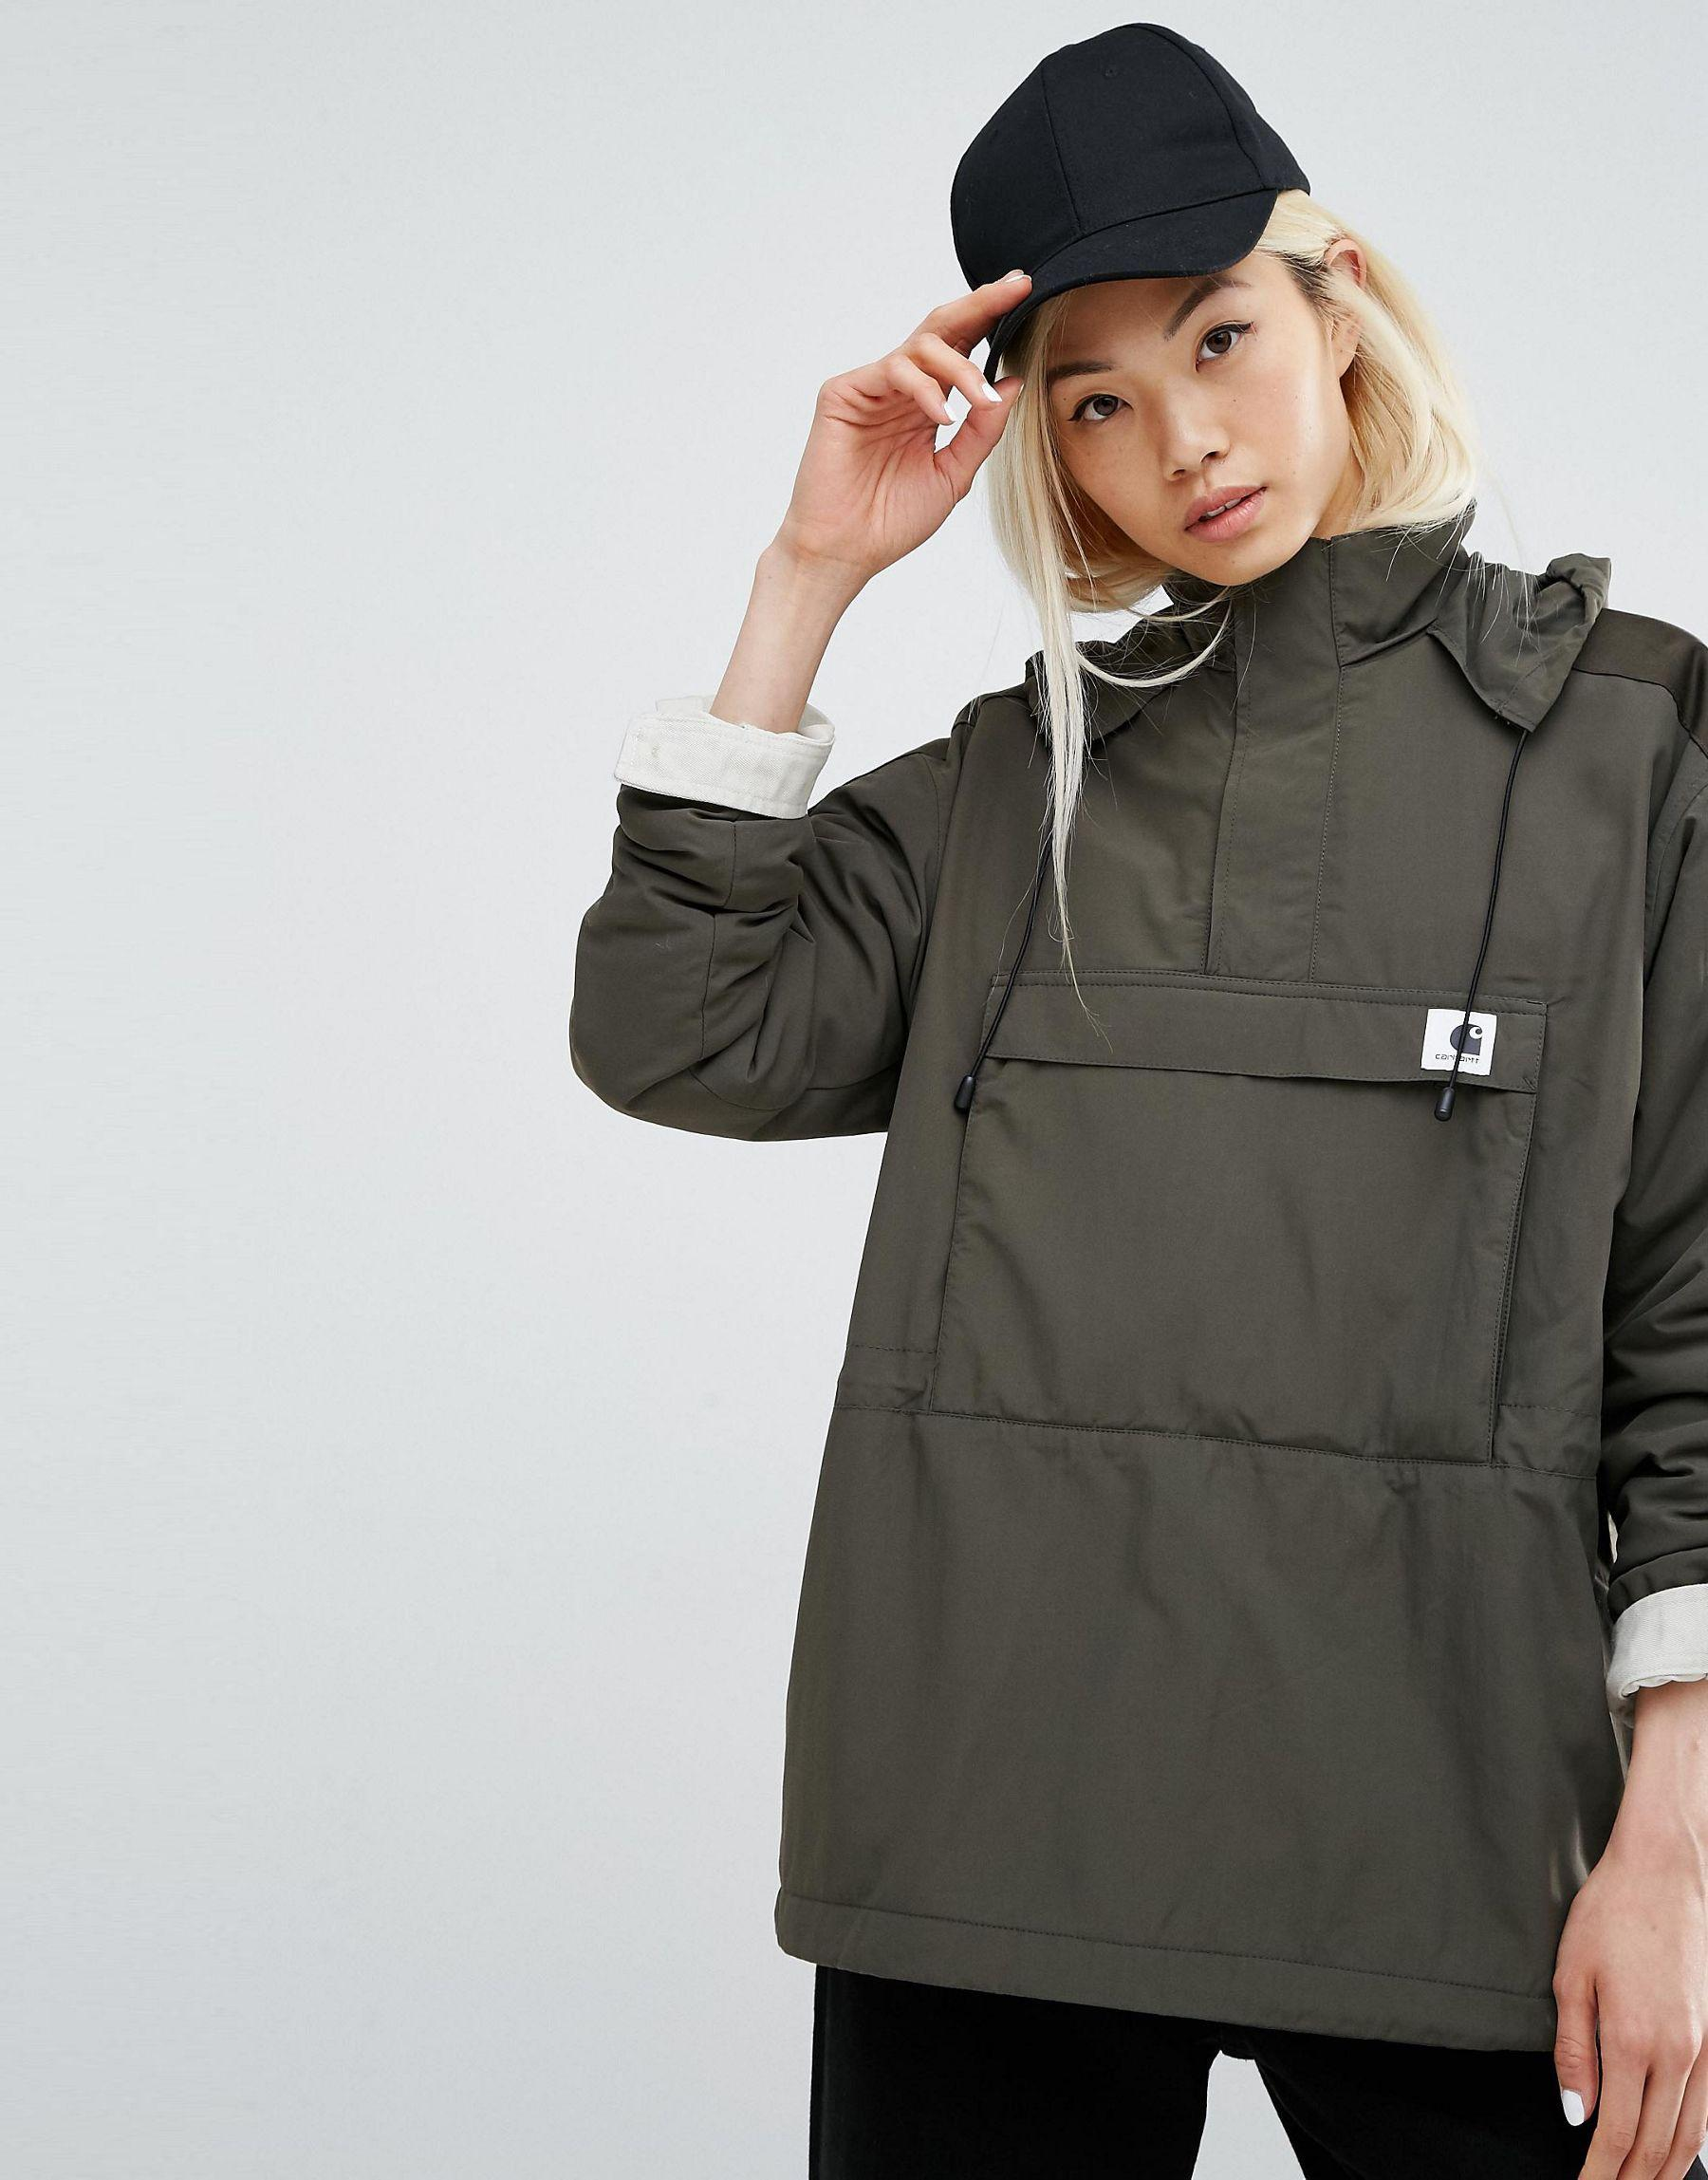 carhartt wip justine pullover jacket with half zip. Black Bedroom Furniture Sets. Home Design Ideas